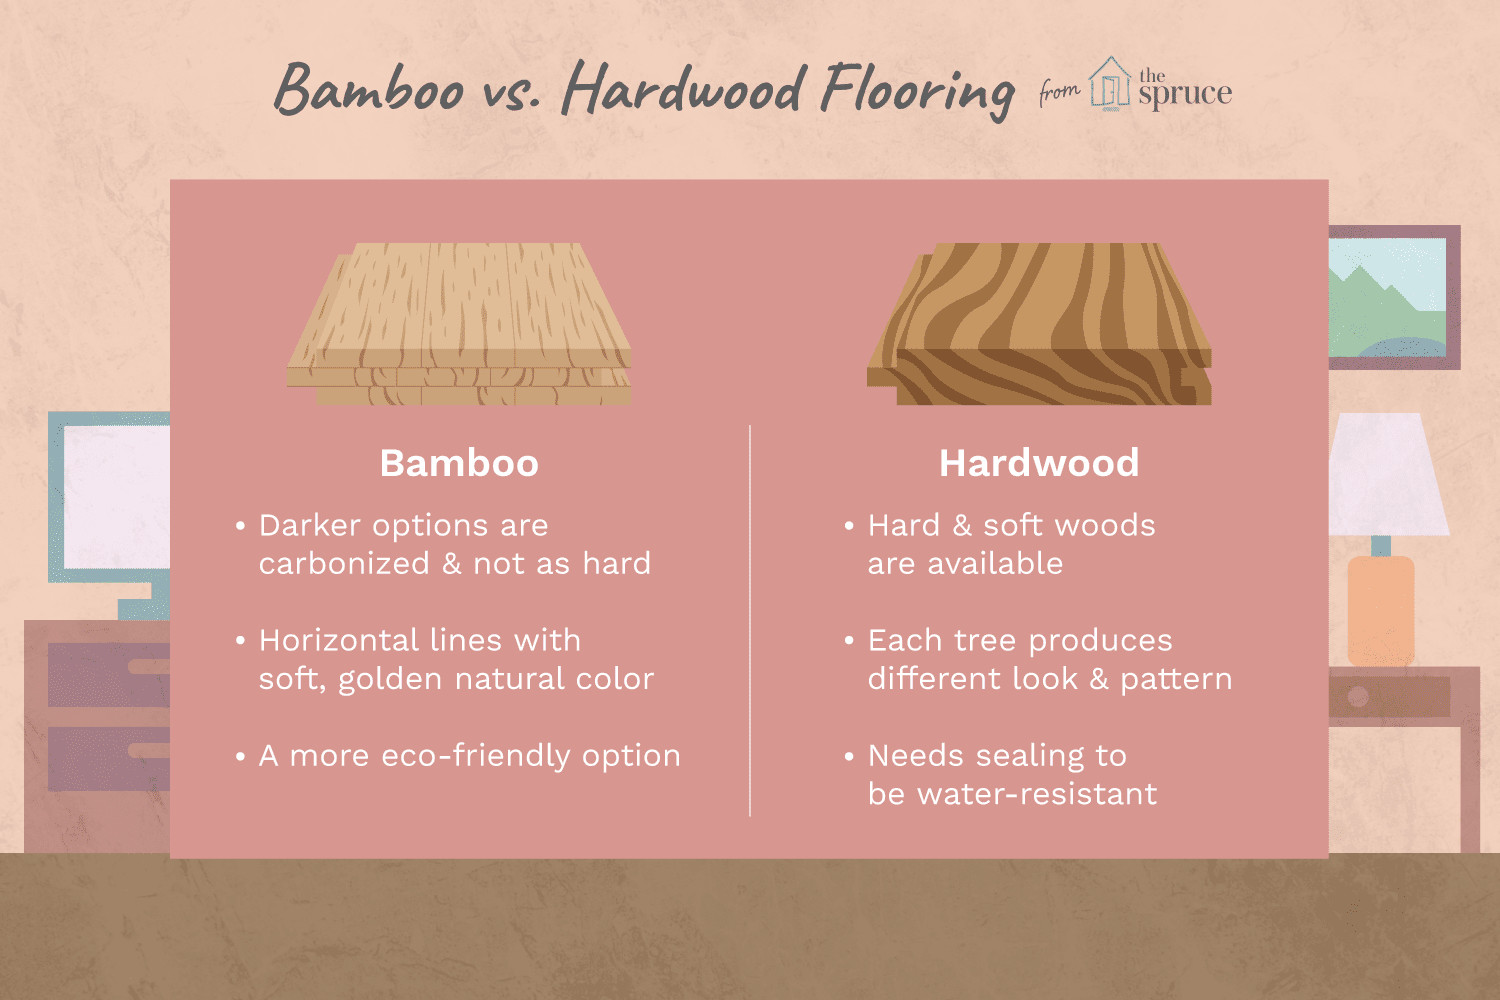 hardwood flooring hardness scale acacia of a side by side comparison bamboo and wood flooring regarding bamboo or hardwood flooring